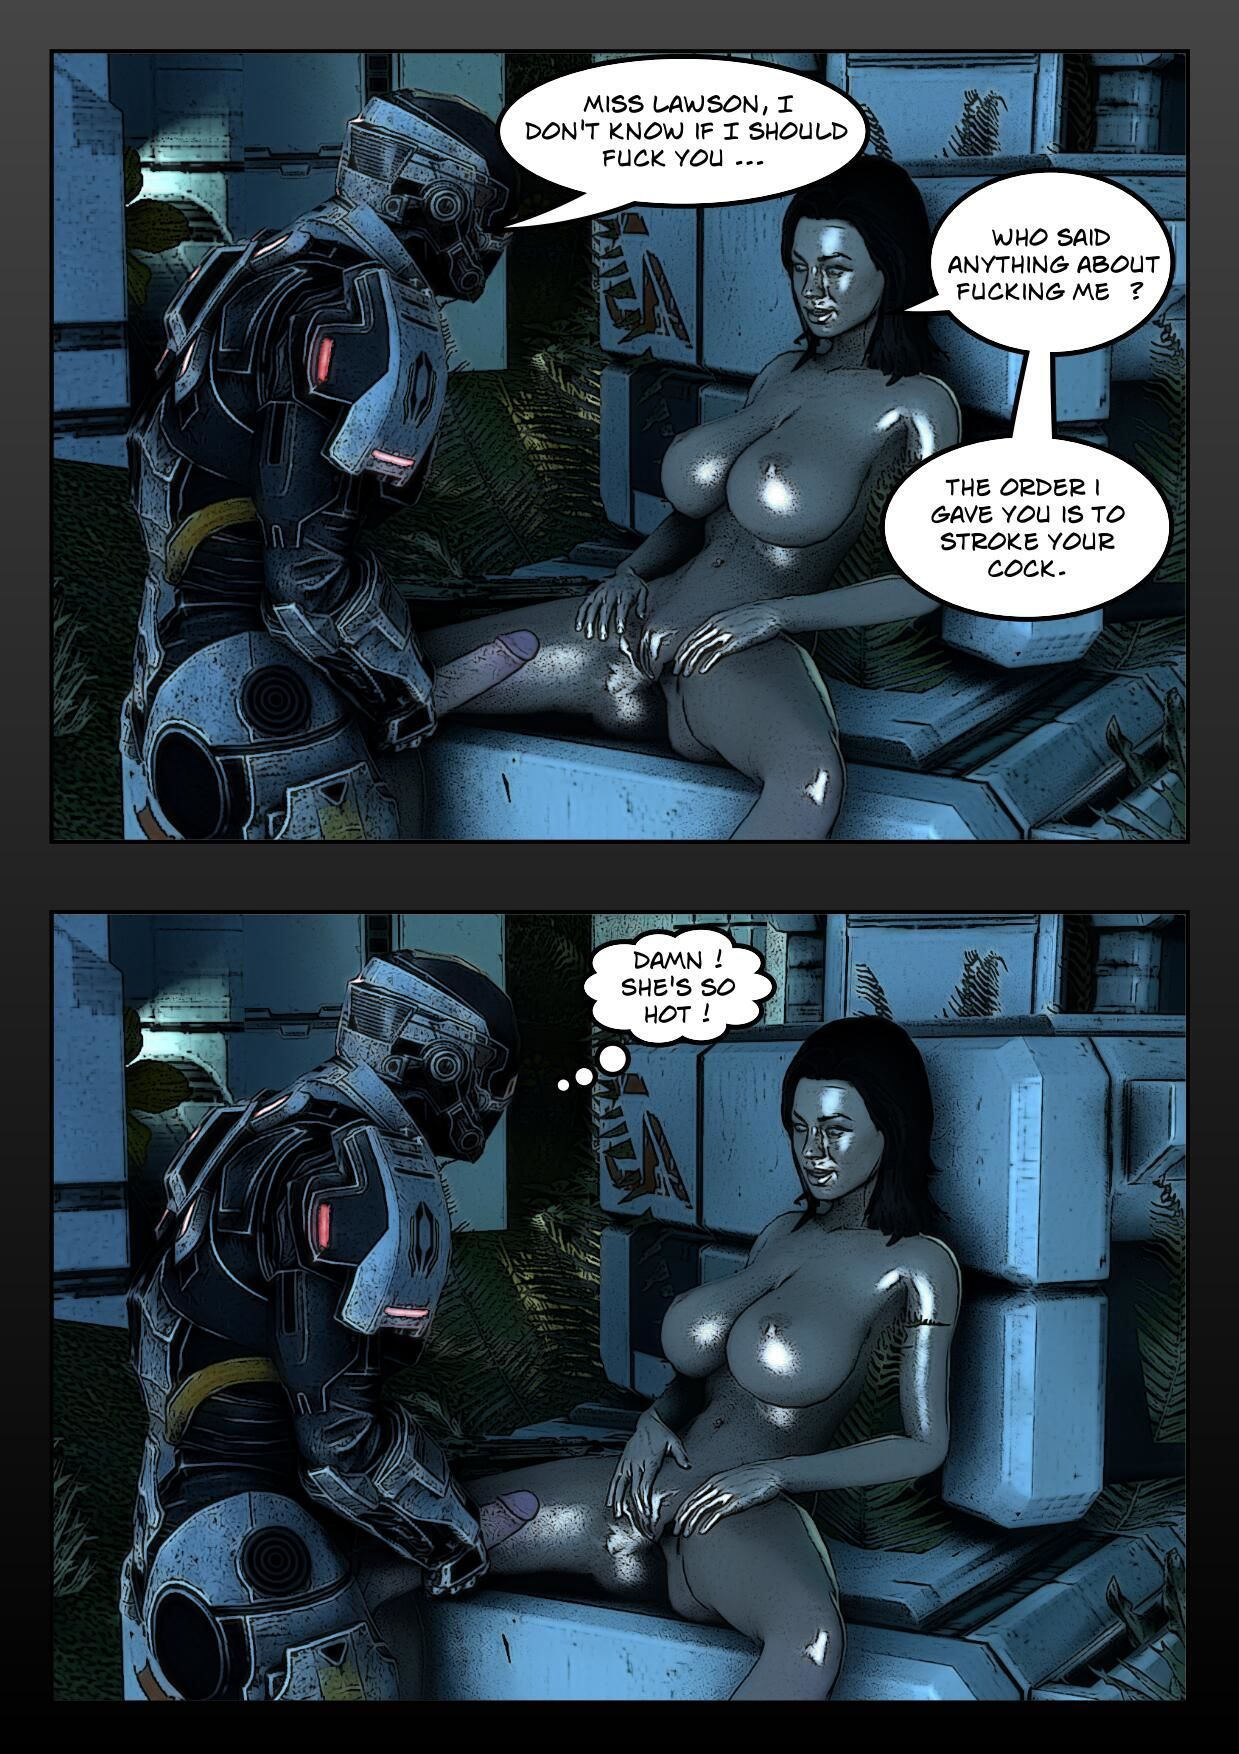 [KelSFM] The outpost Issue 001 (Mass Effect) - part 2